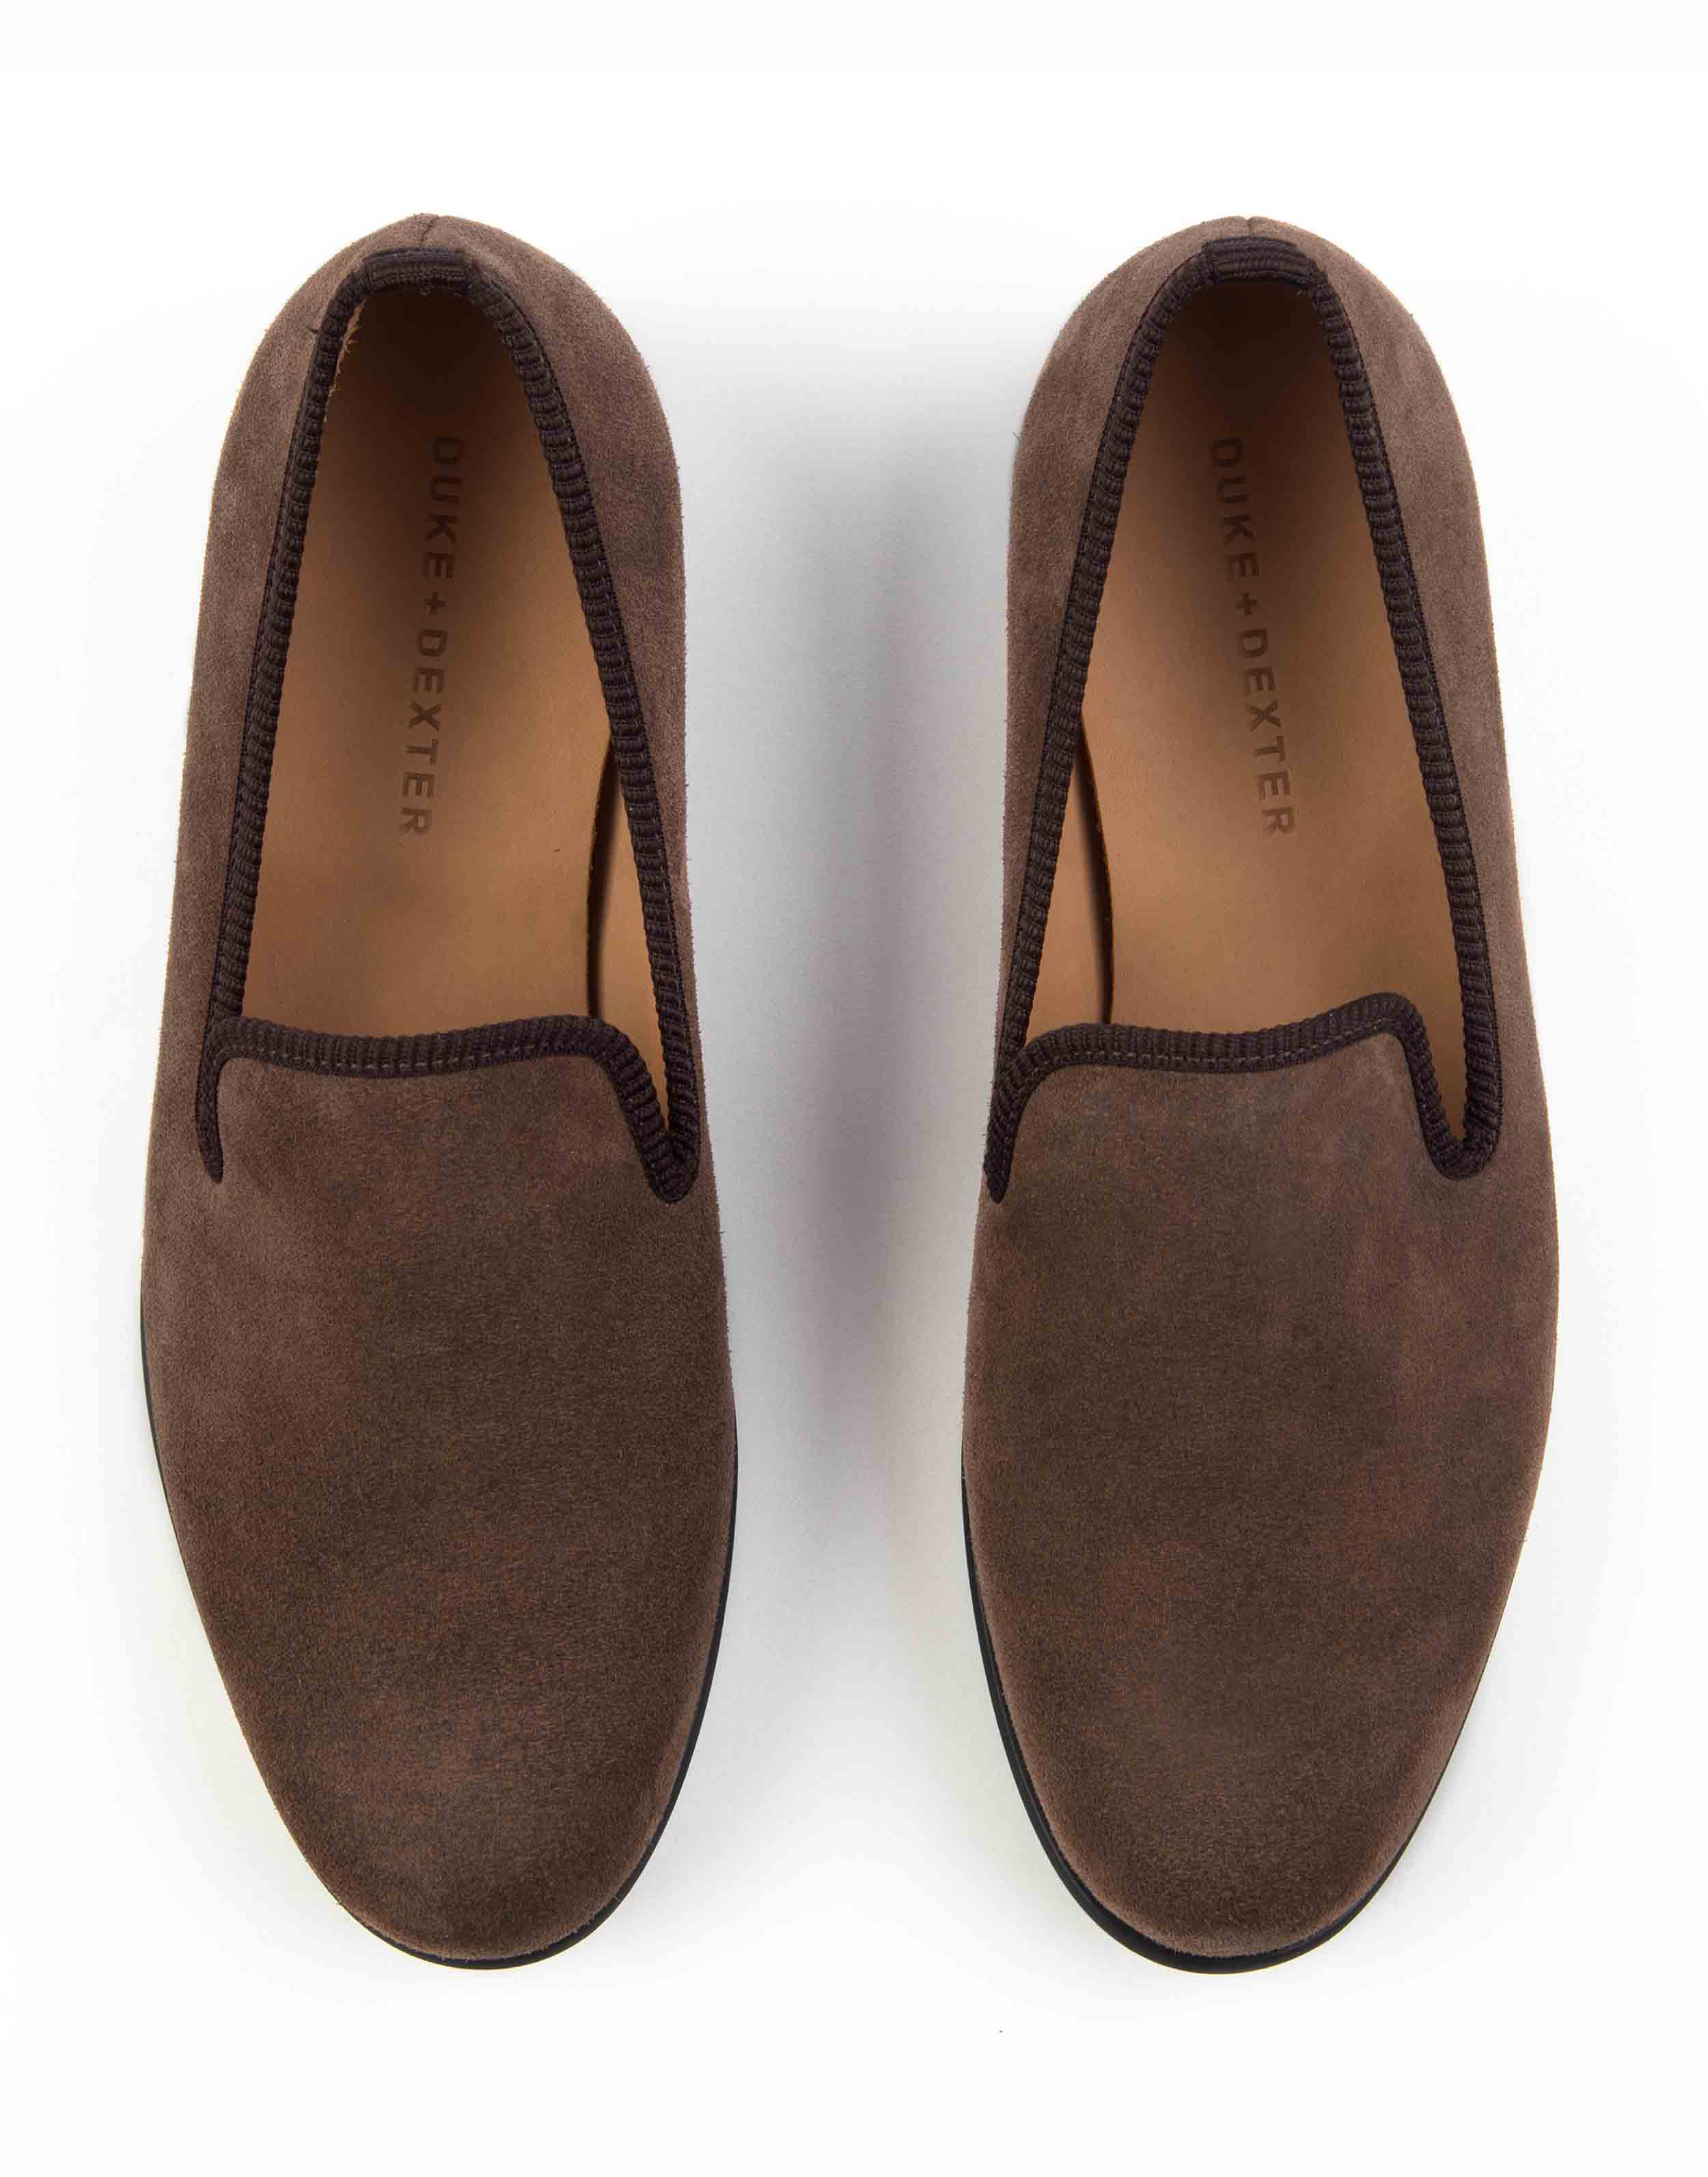 BROWN SUEDE LOAFERS4